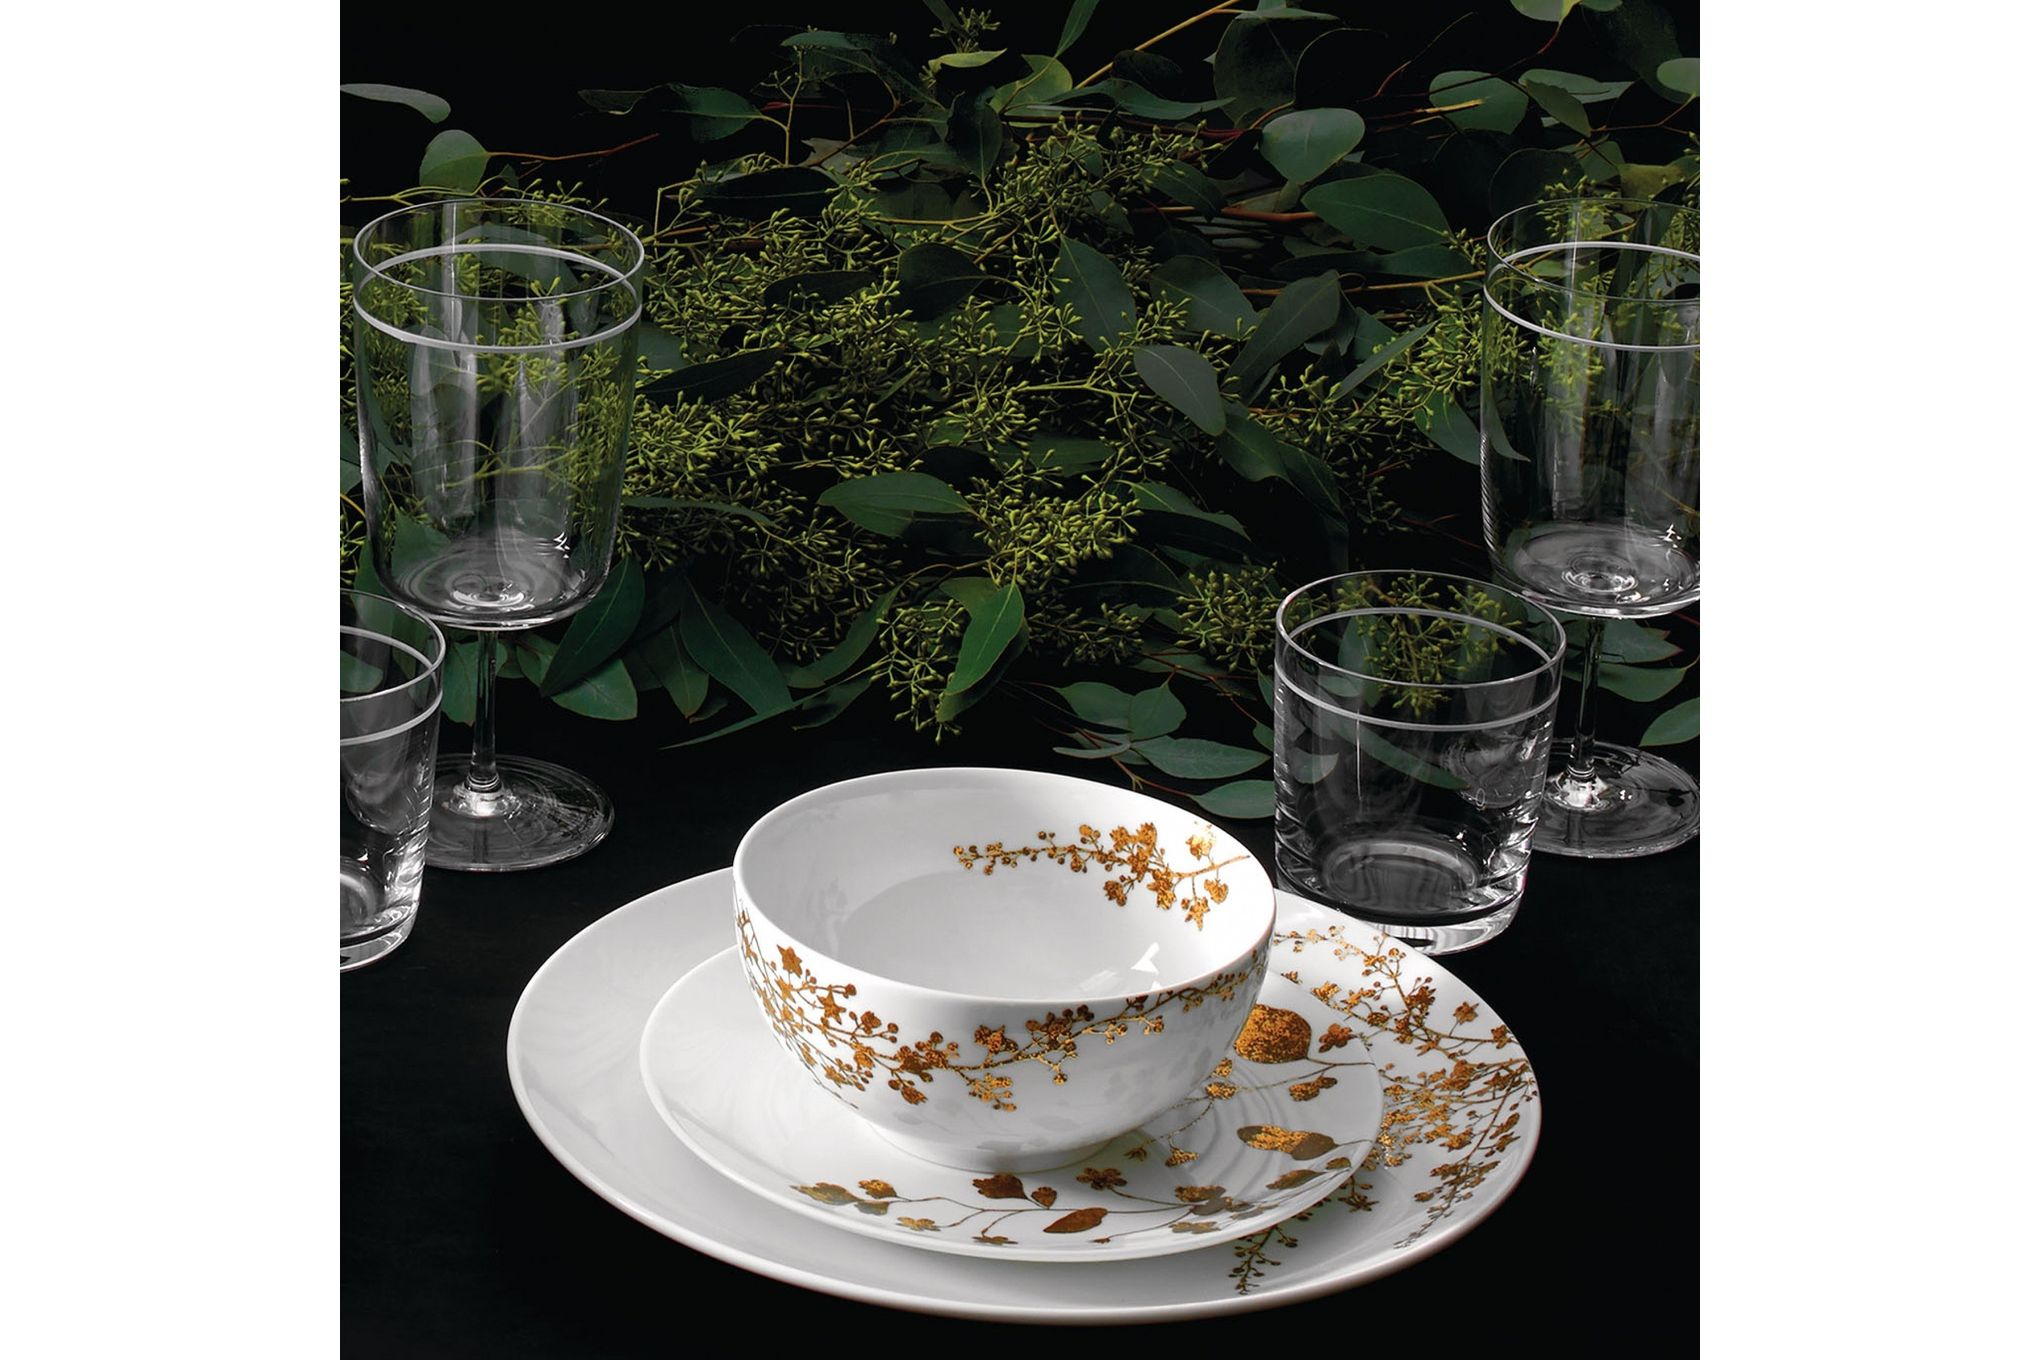 Vera Wang for Wedgwood Jardin 4 Piece Place Setting thumb 2